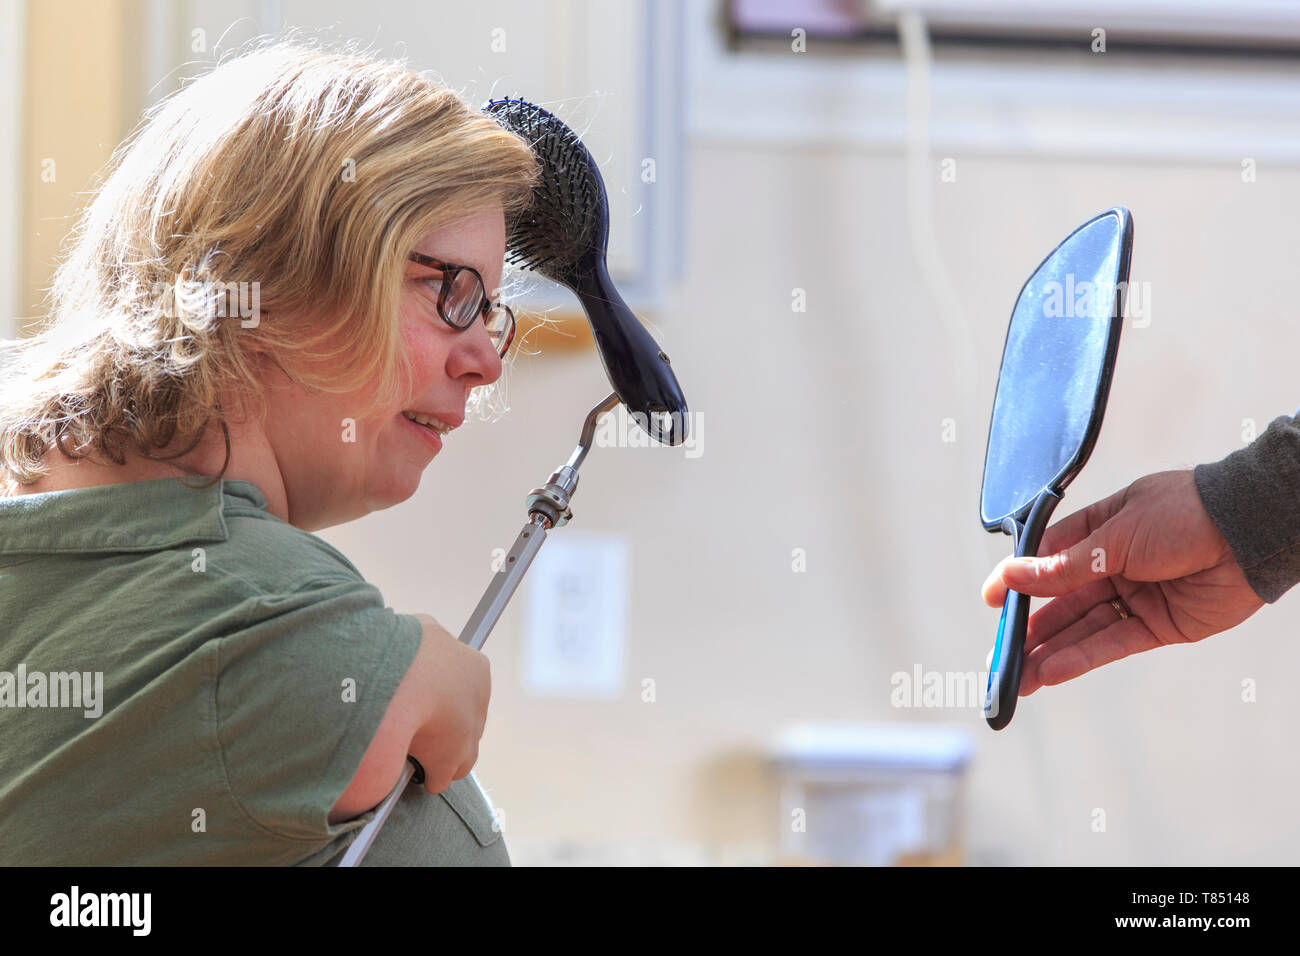 Woman with TAR Syndrome using an attachment to brush her hair - Stock Image